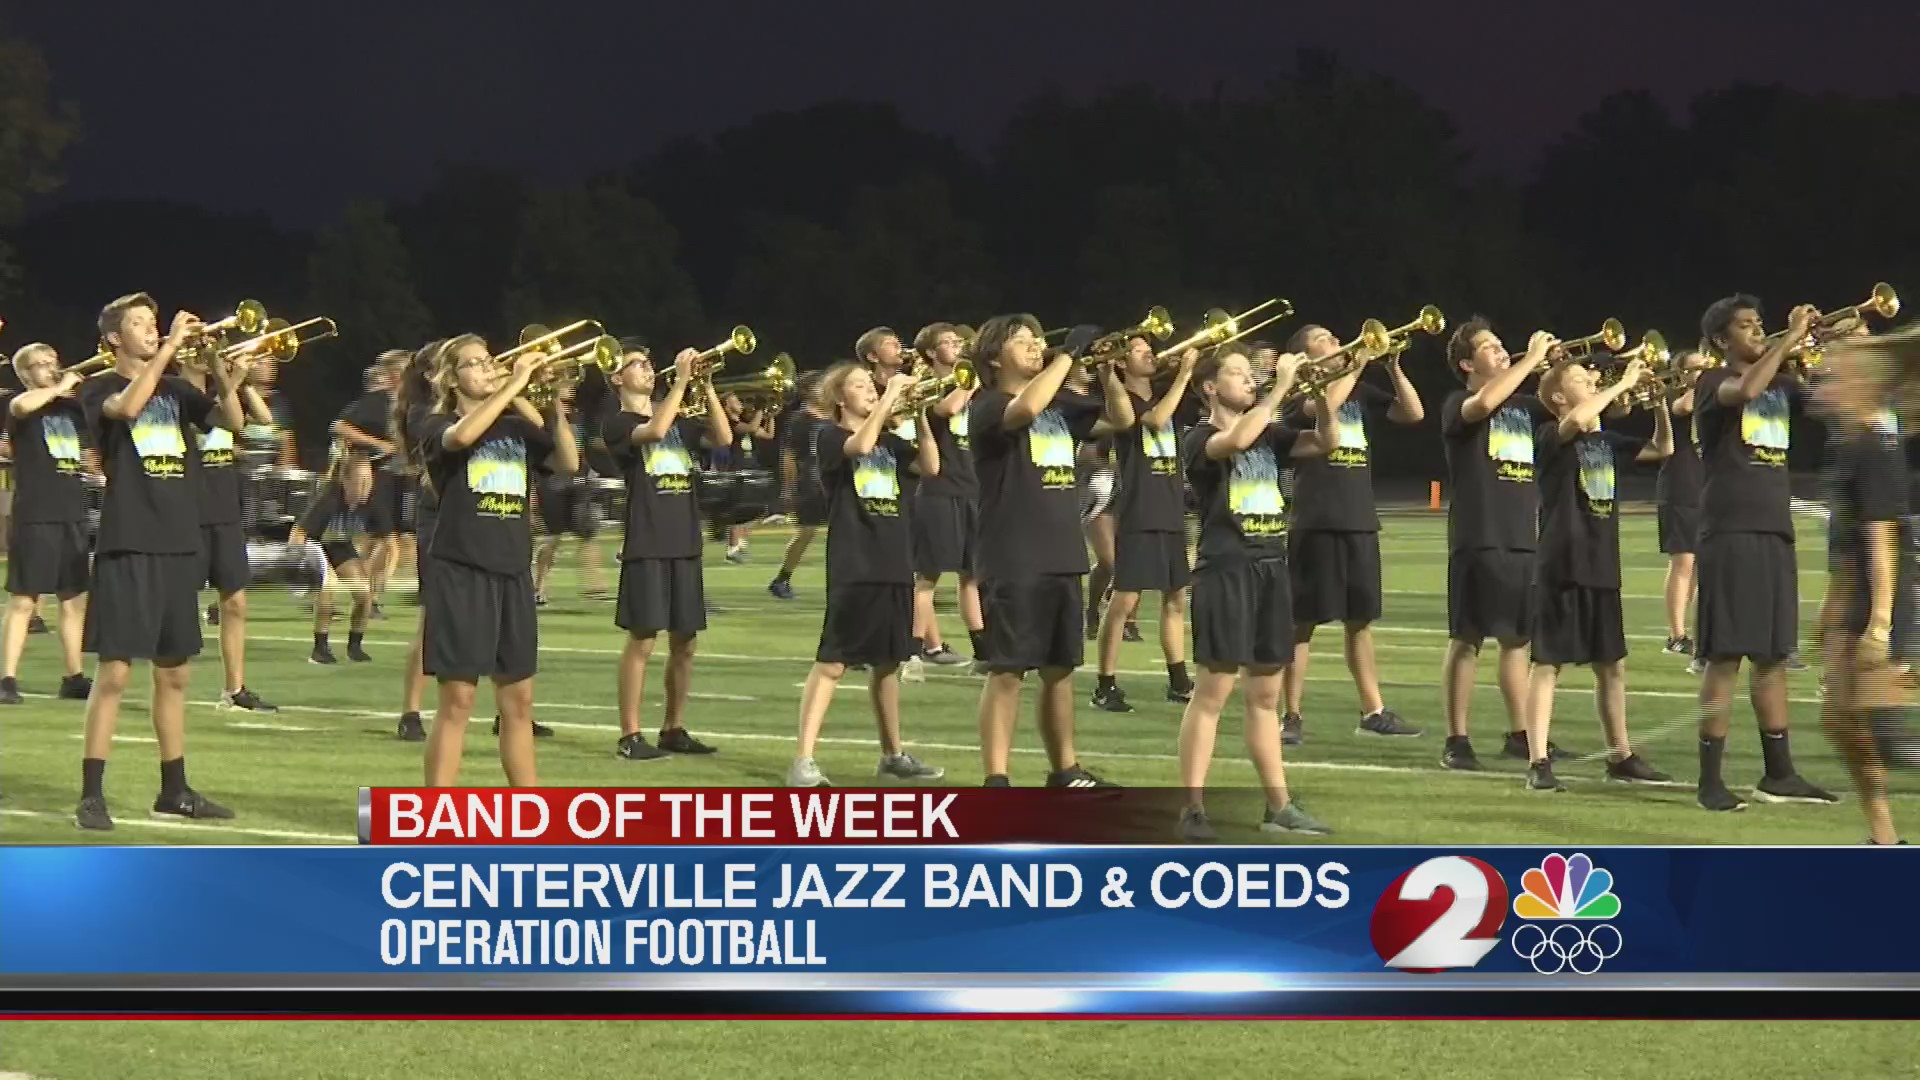 Centerville Band of the Week